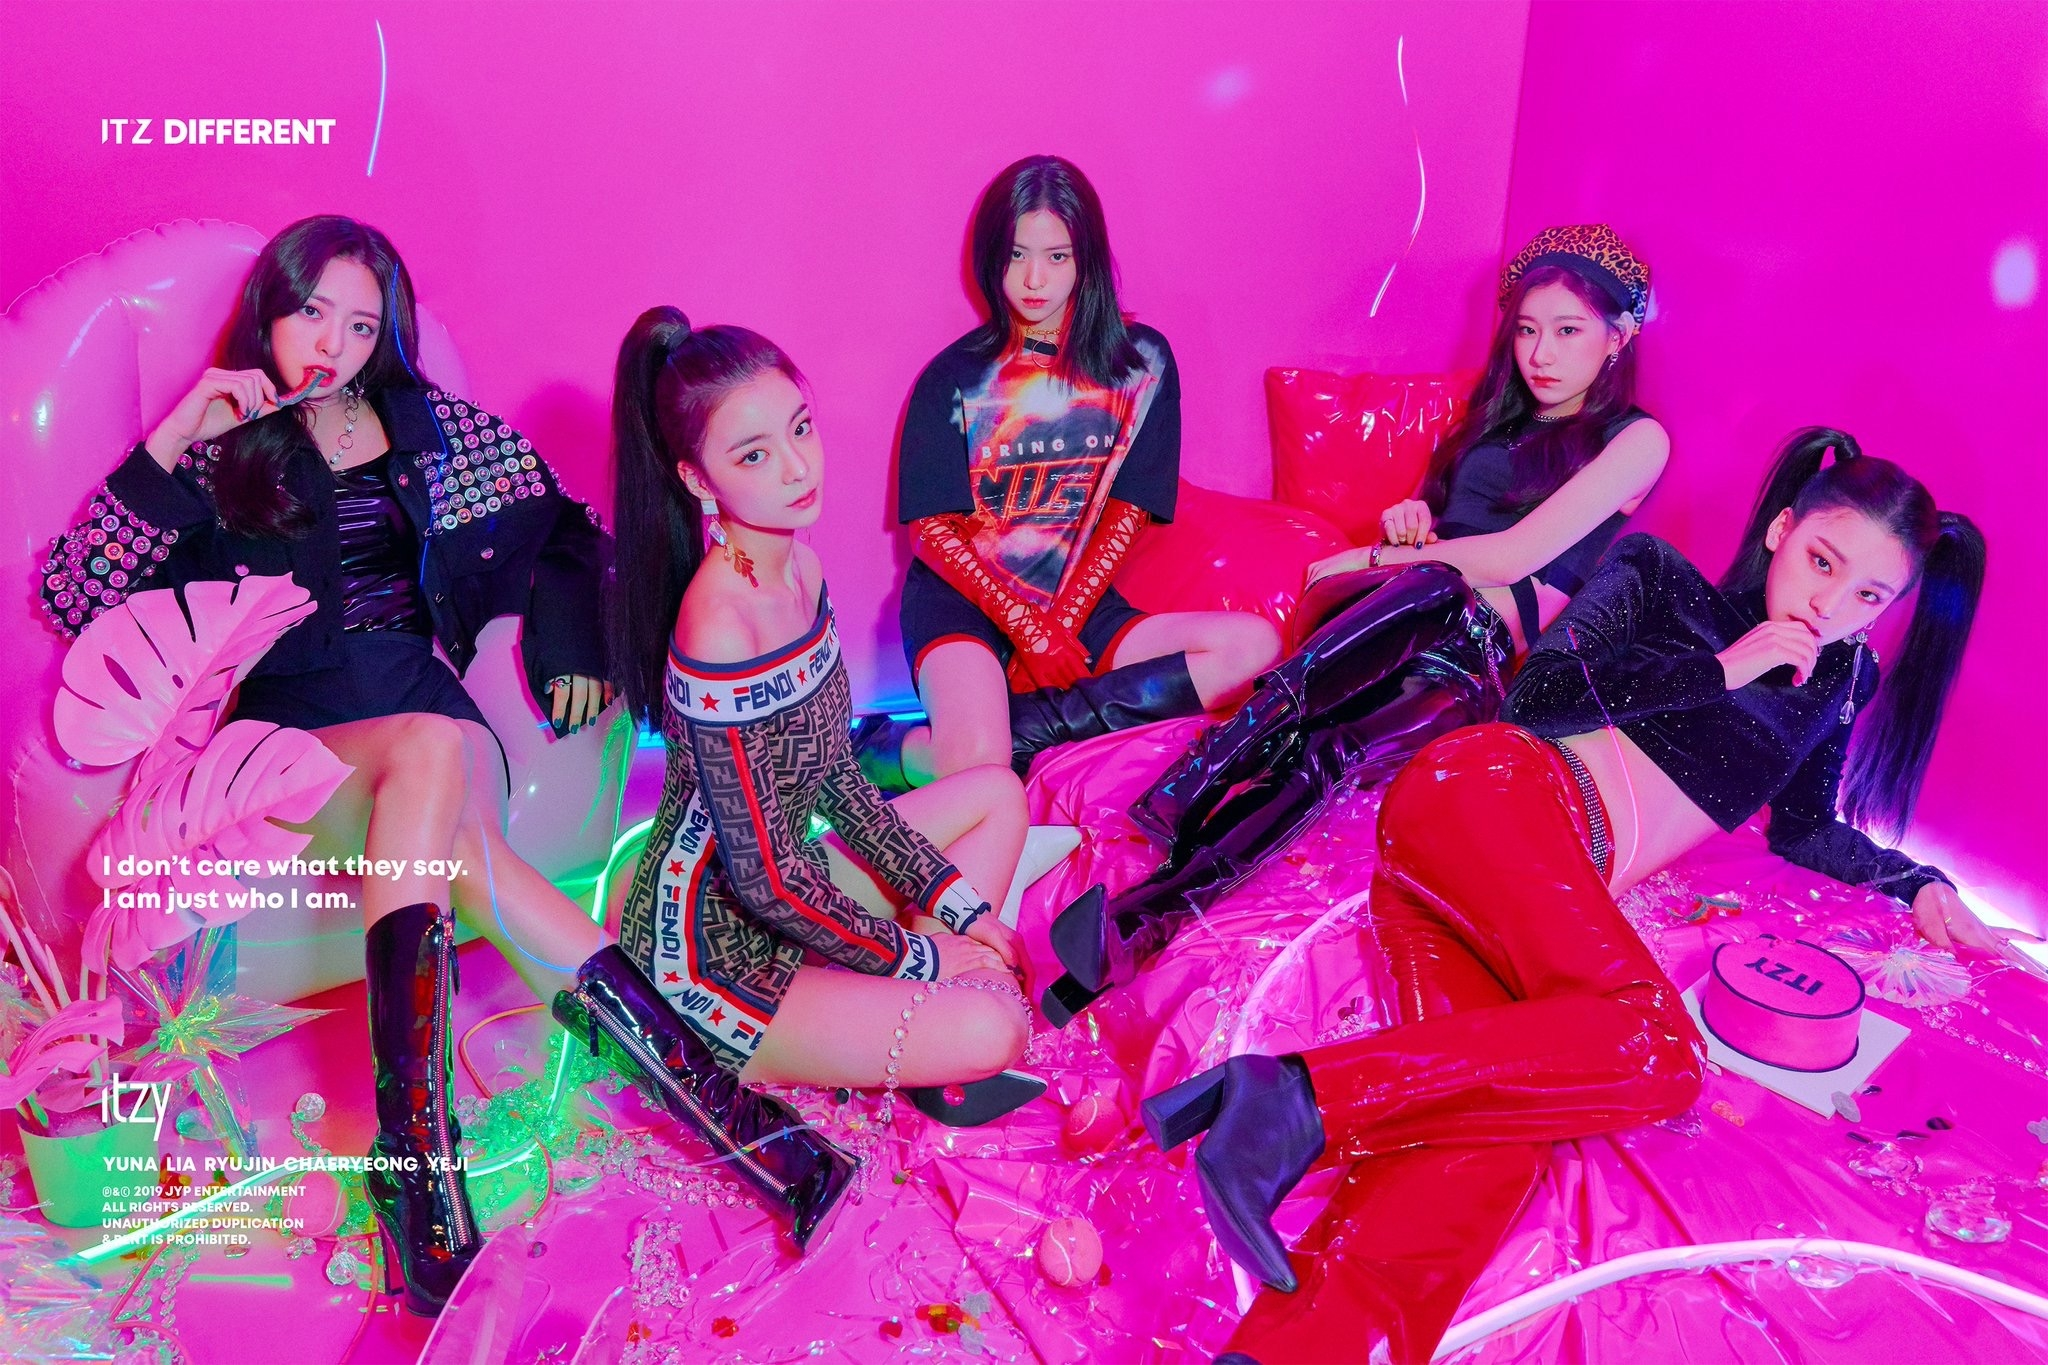 [IT'z Different] - ITZY (있지)